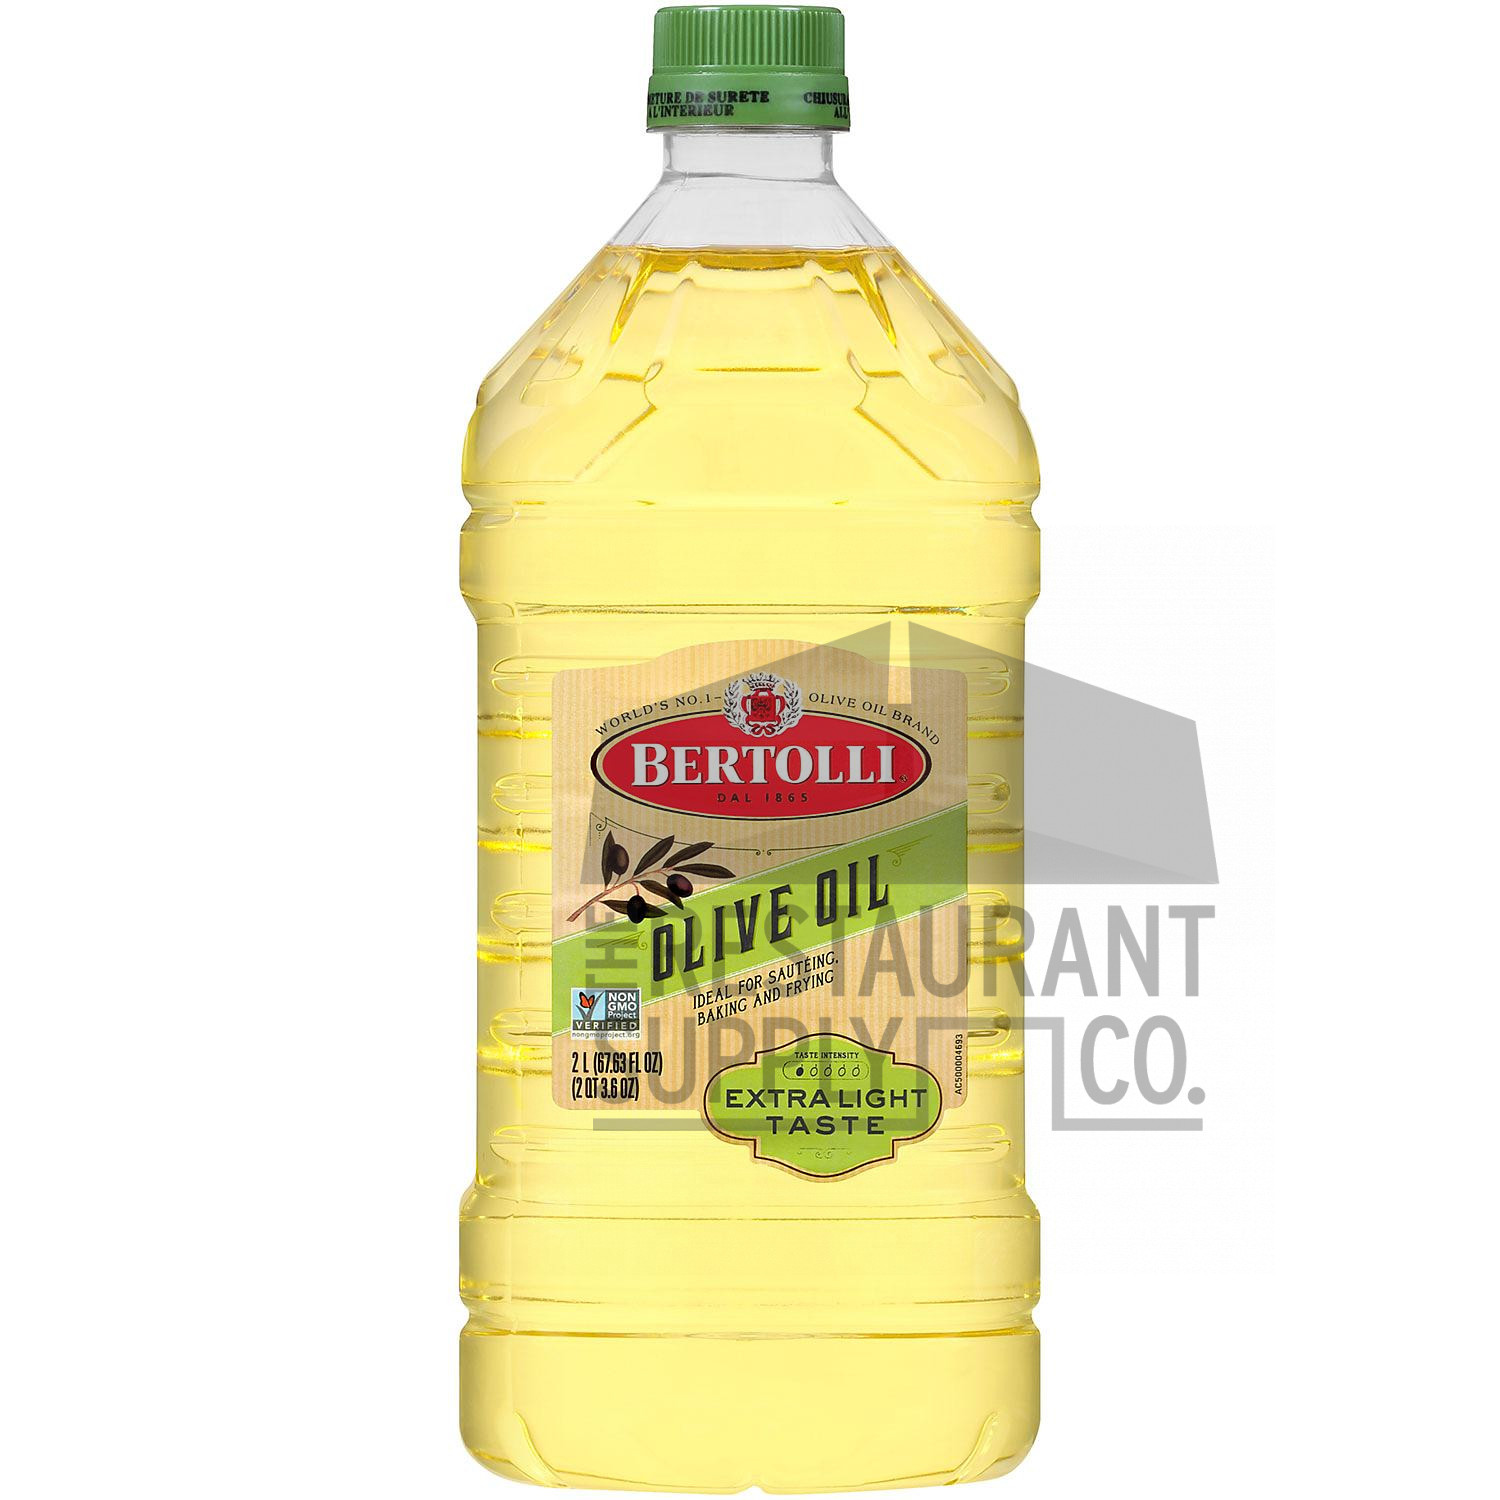 Bertolli Extra Light Olive Oil 2 Liter